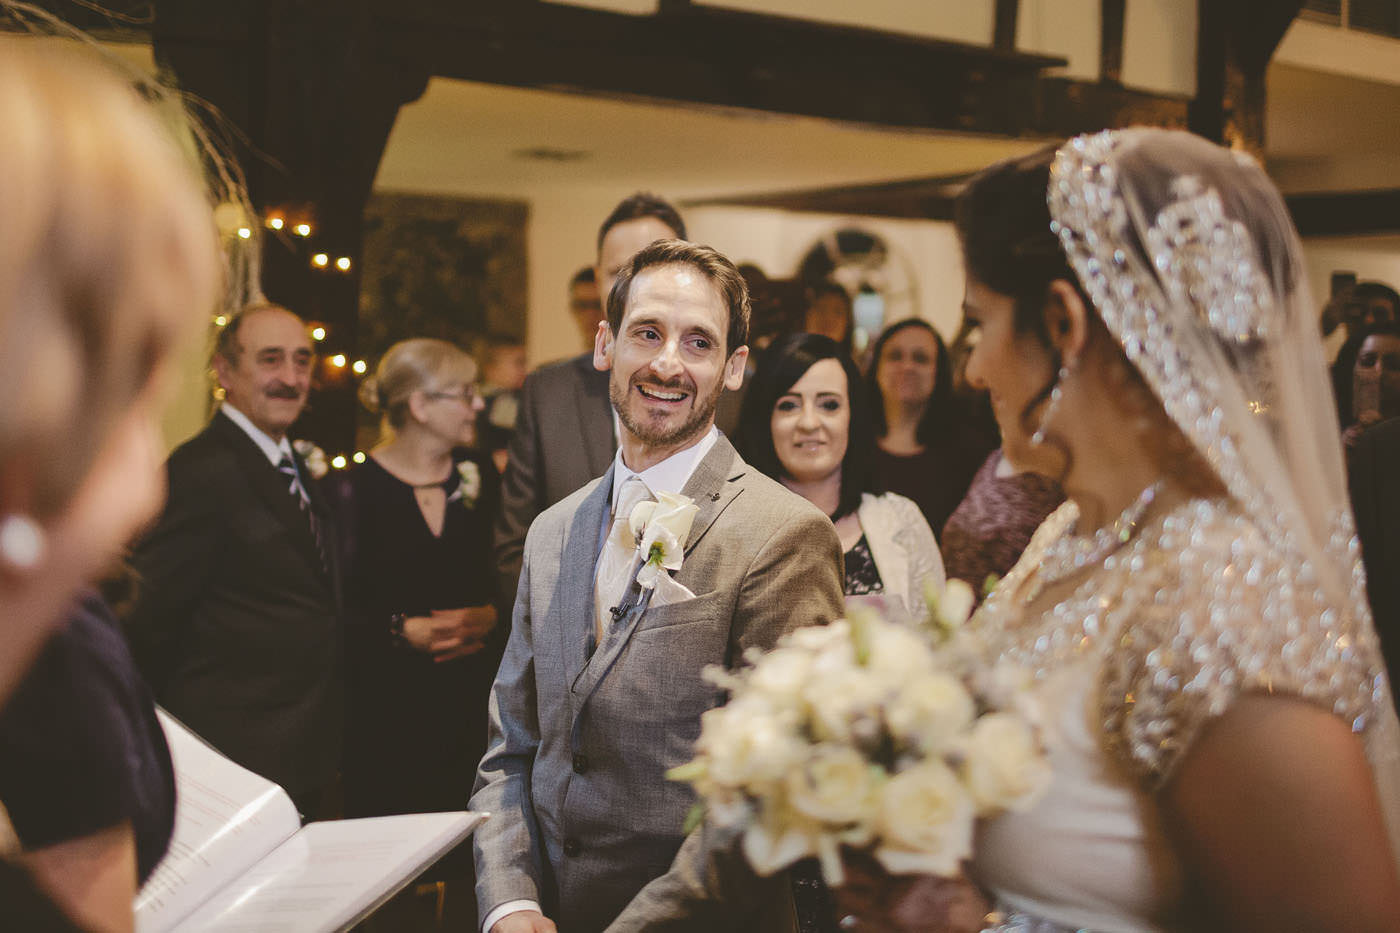 edmundjasveen burford bridge hotel wedding photographer 0034